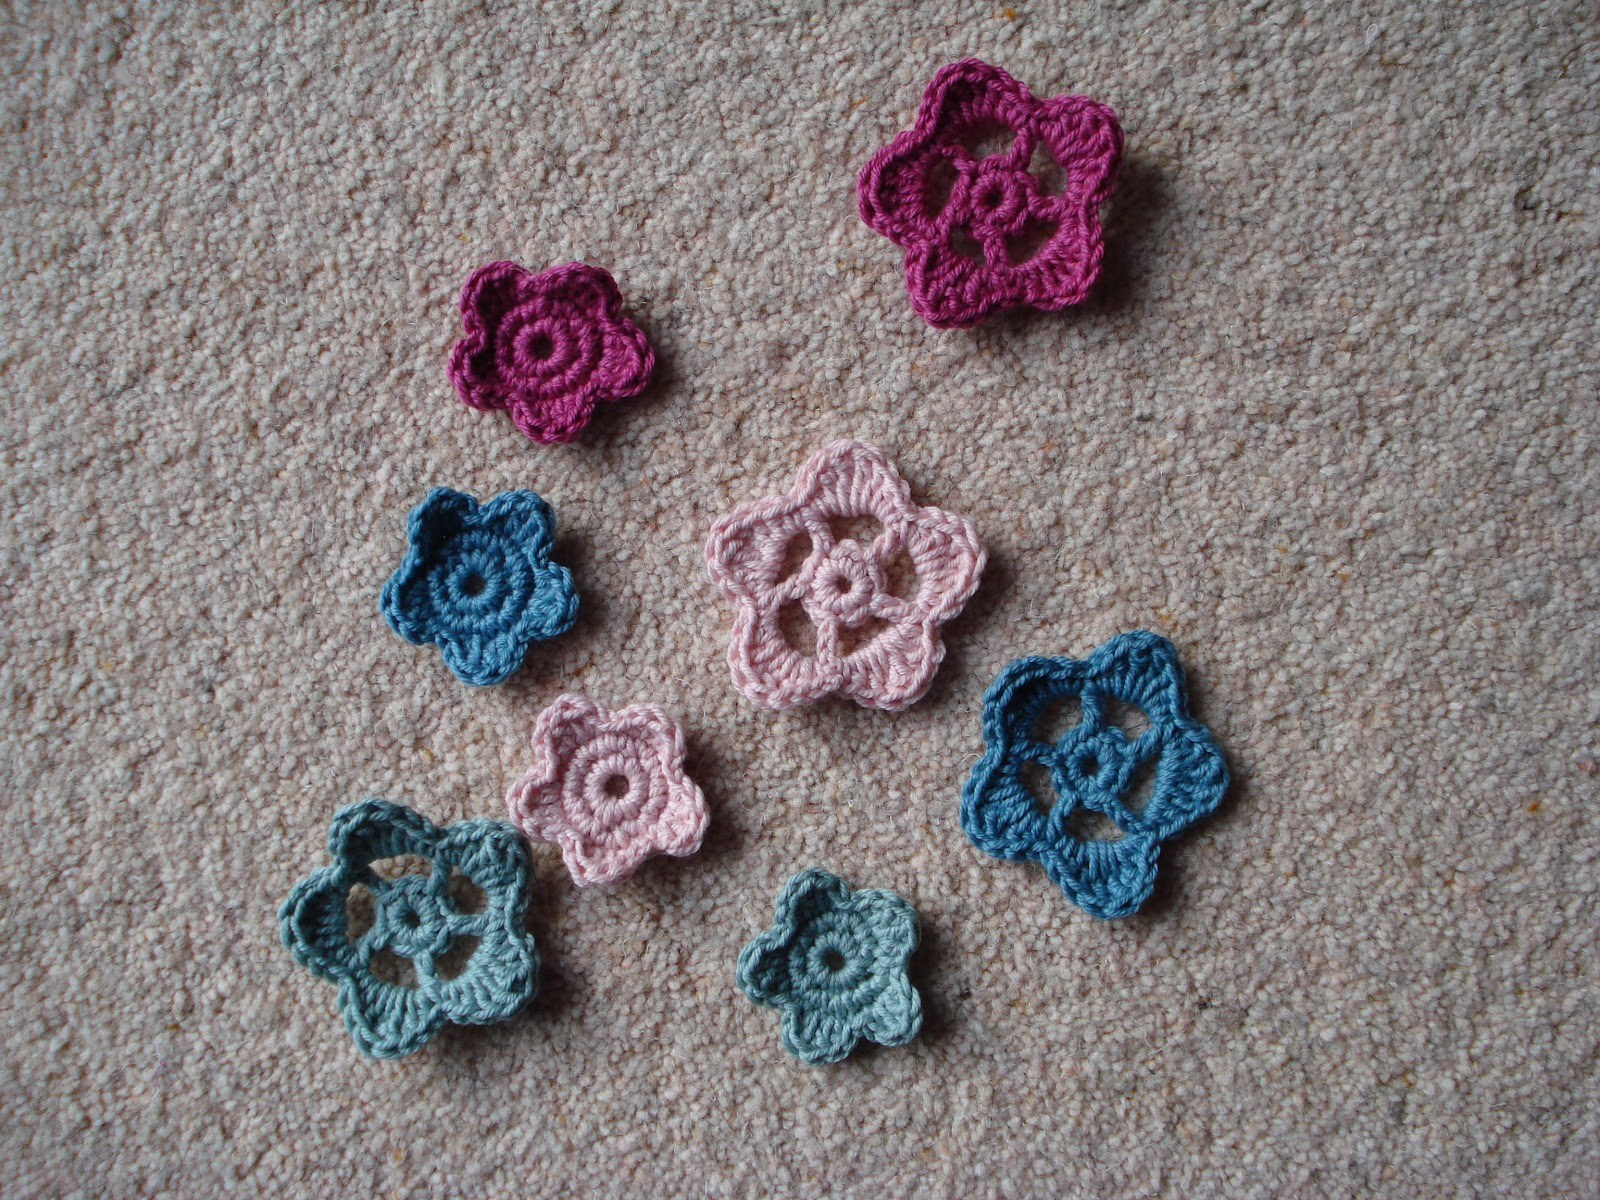 Lavender and Wild Rose: Crochet flowers pattern